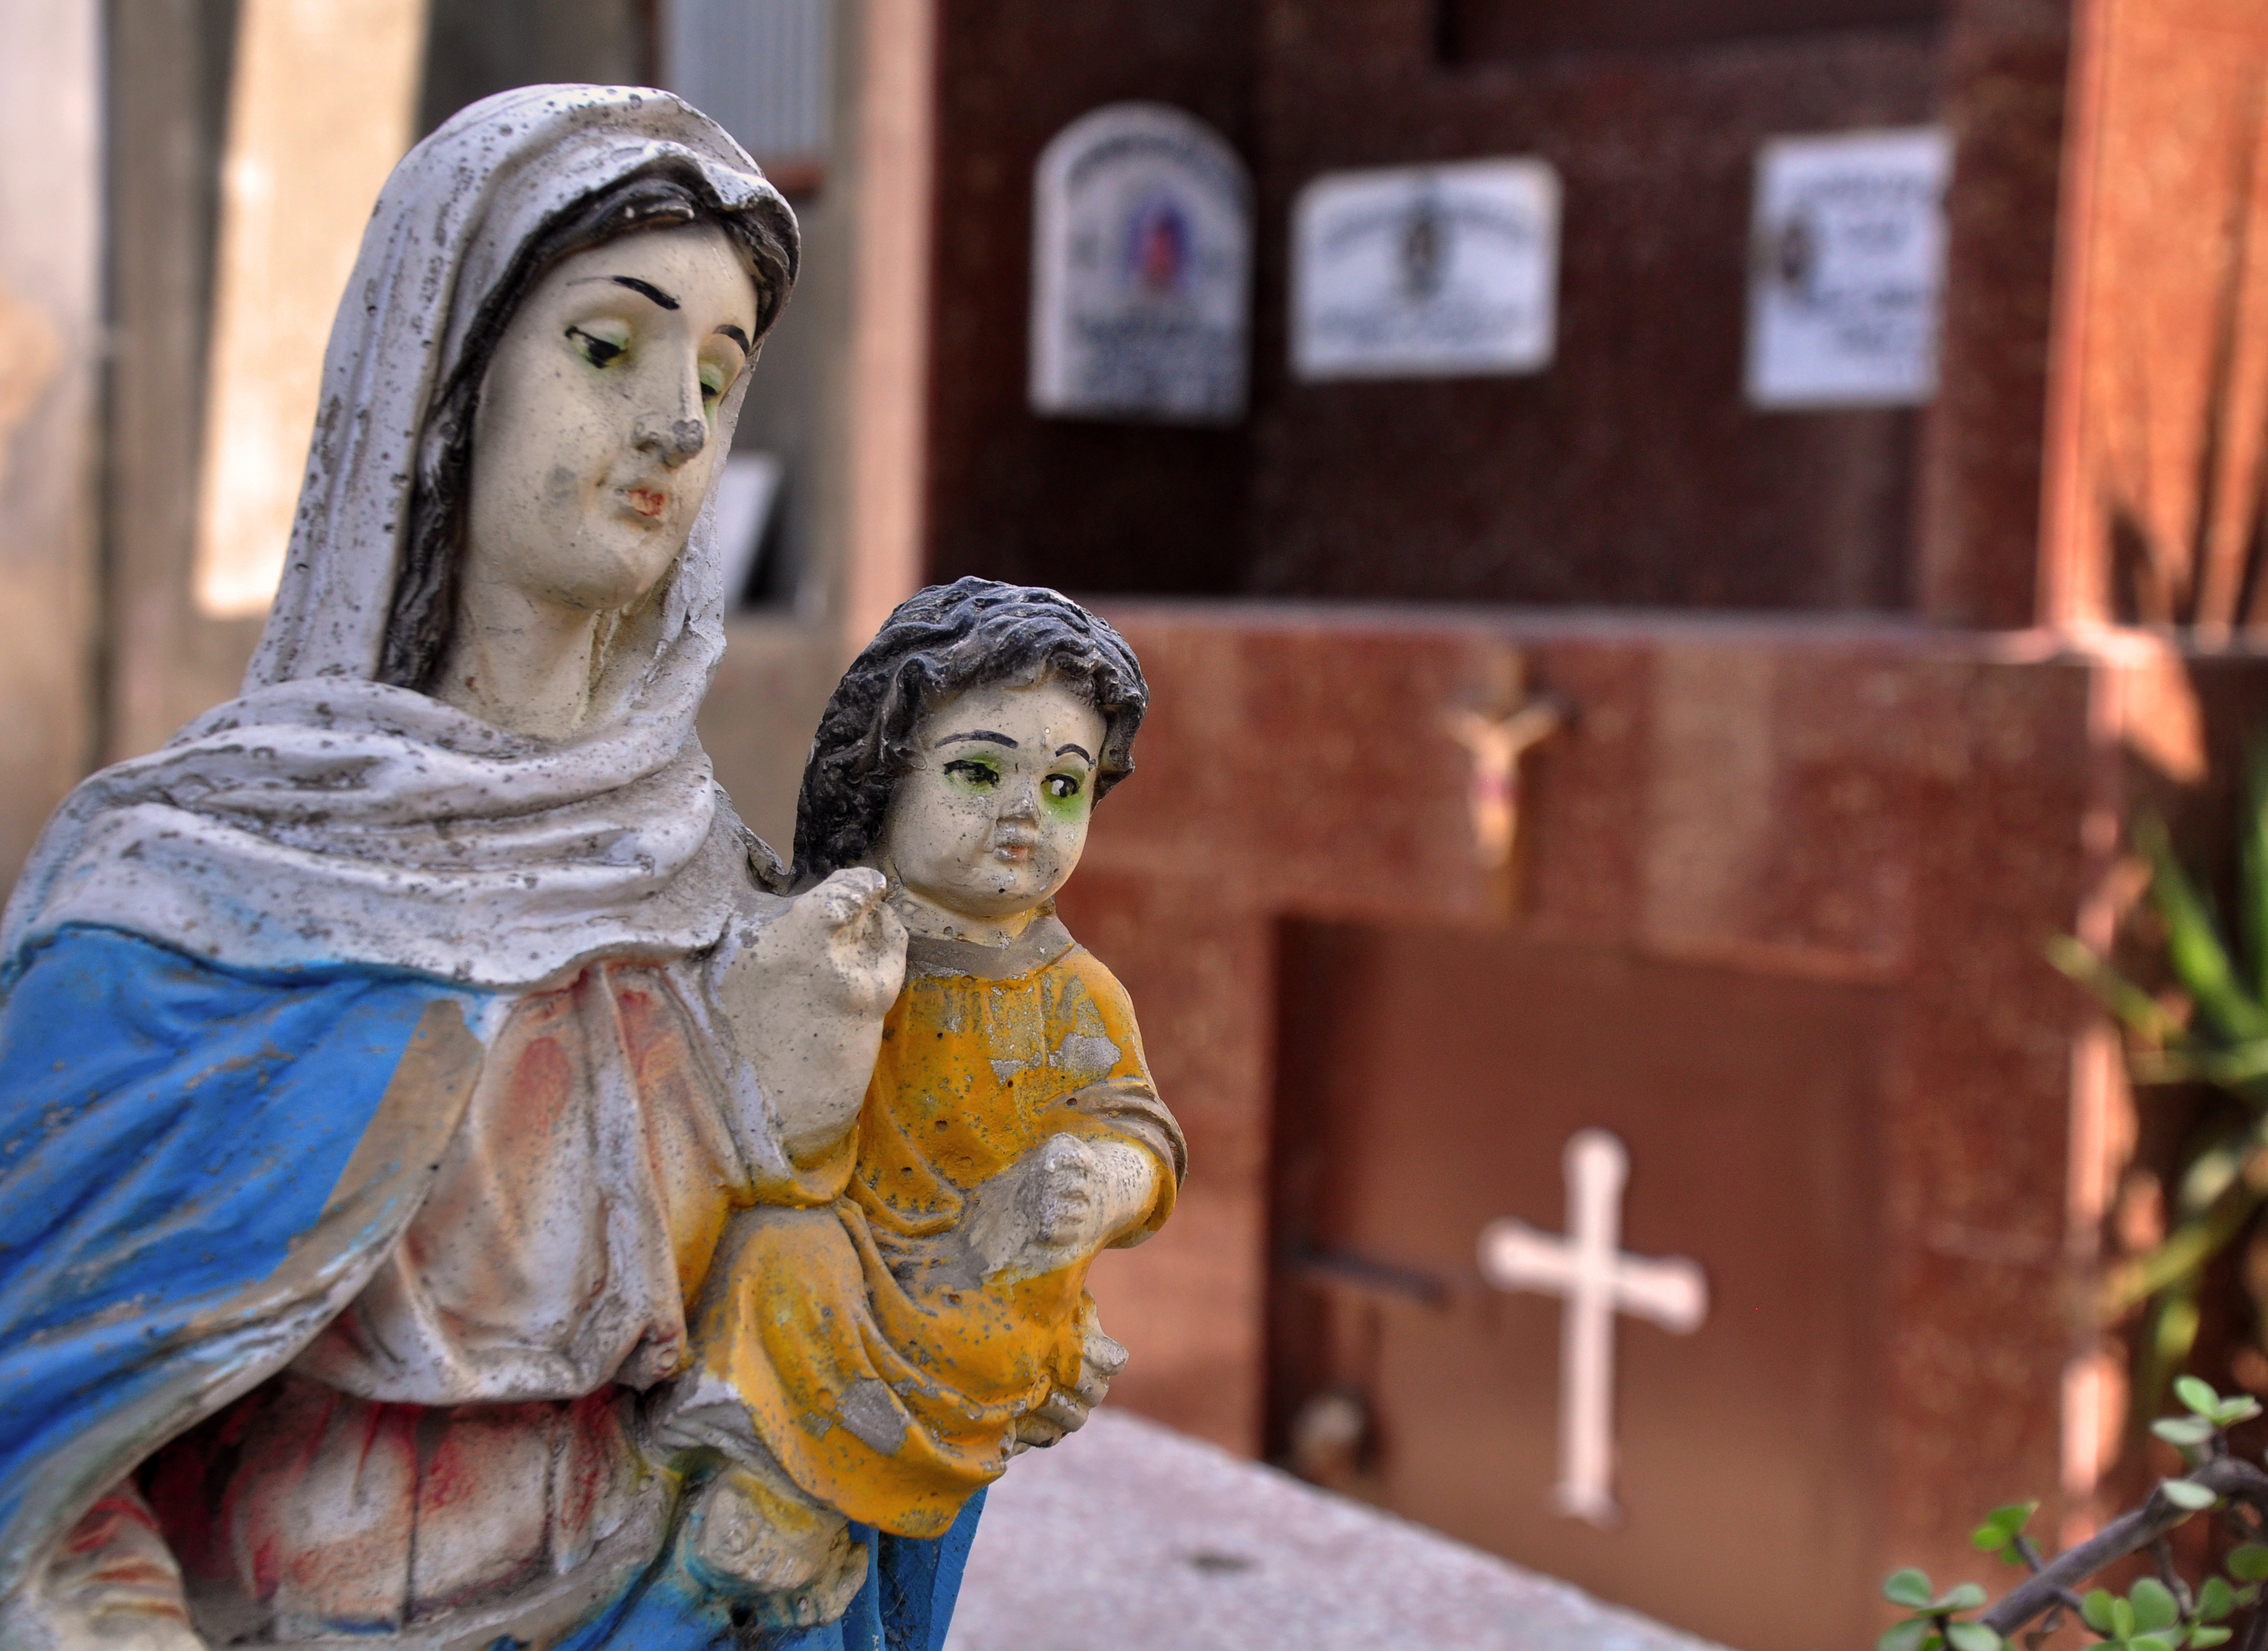 A statue of the Virgin Mary in the Maronite graveyard in Mar Al-Kadima, Cairo. (Photo by Marwa Morgan)